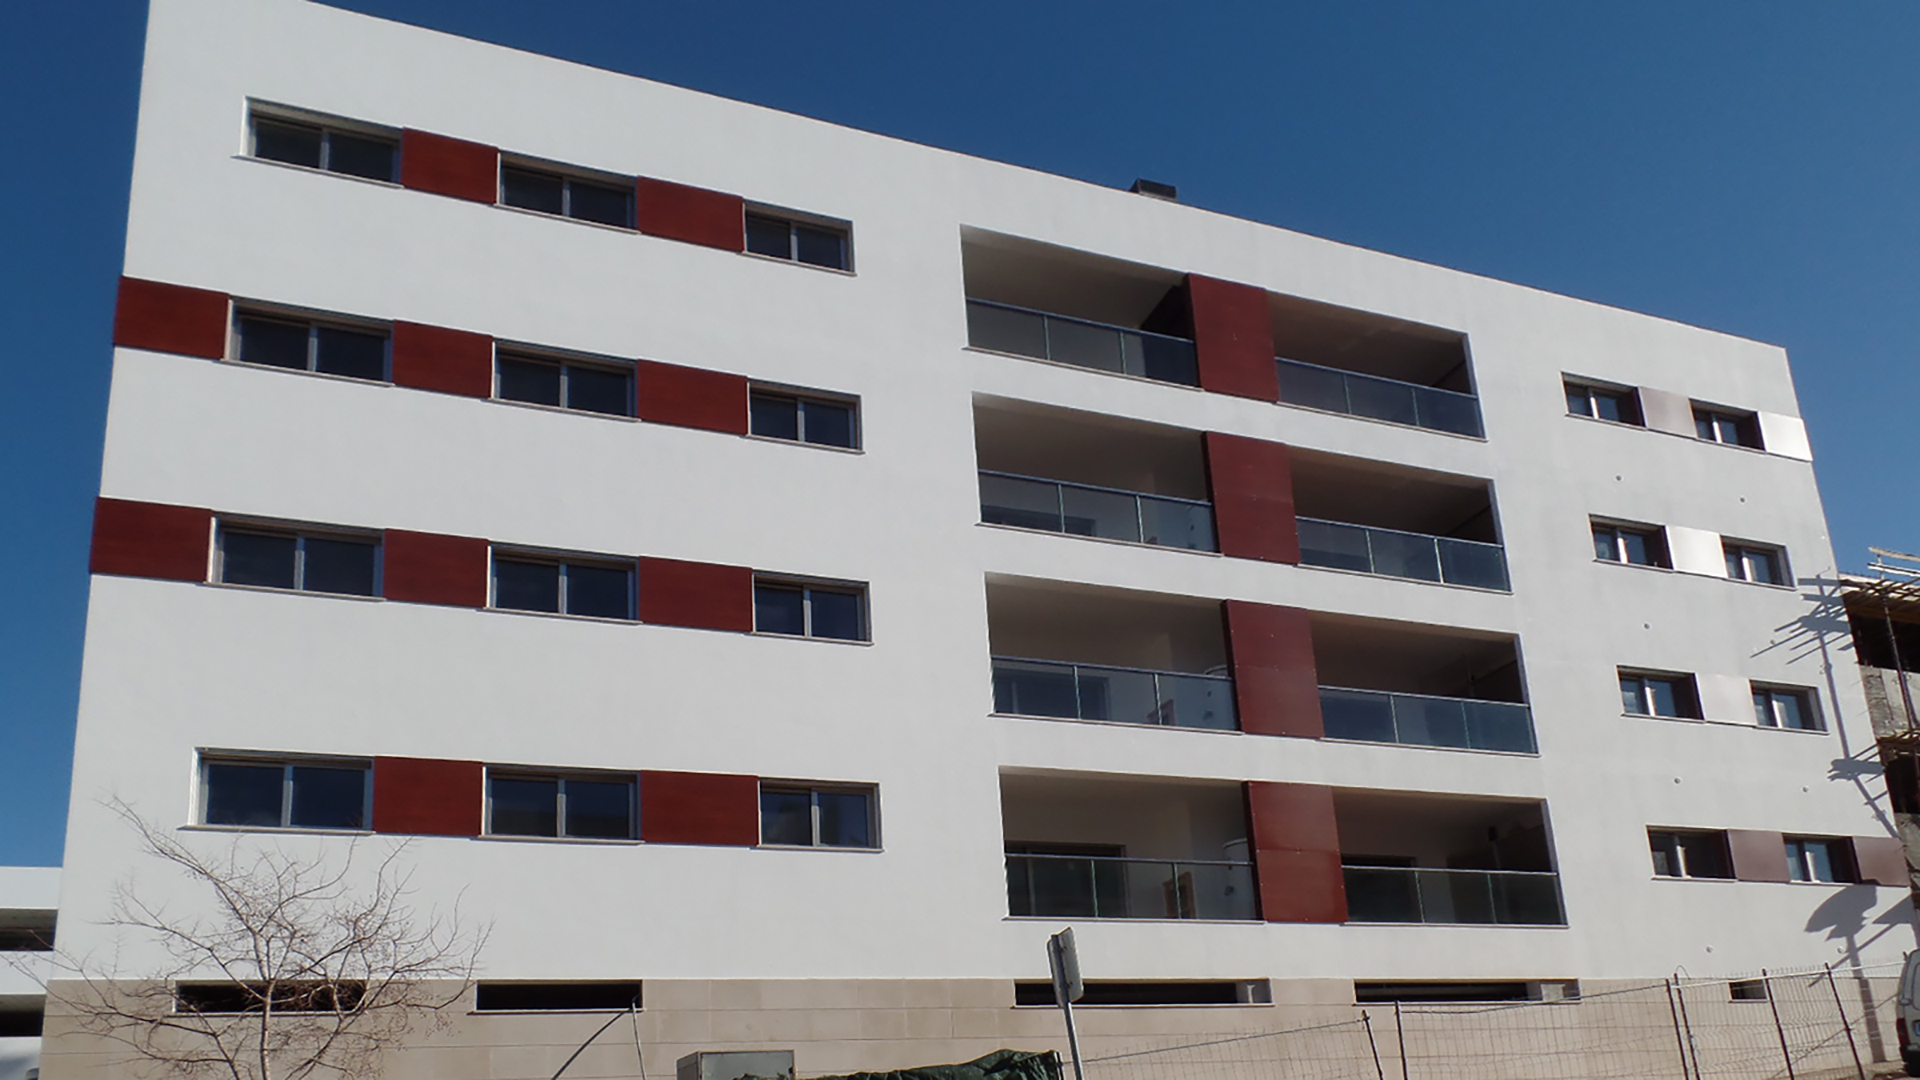 A selection of new 3 bedroom apartments with large terrace, Central Lagos, West Algarve | LG1294 This brand-new four storey building is built to very high specifications. Located in the center of Lagos, within walking distance of all amenities and in an urbanization of recently constructed buildings. Features include a large roof terrace with two communal Jacuzzis and shower with panoramic views of the city and marina. Ideal for use as a fulltime residence or rental property. Underground boxed garages and lockable storage room